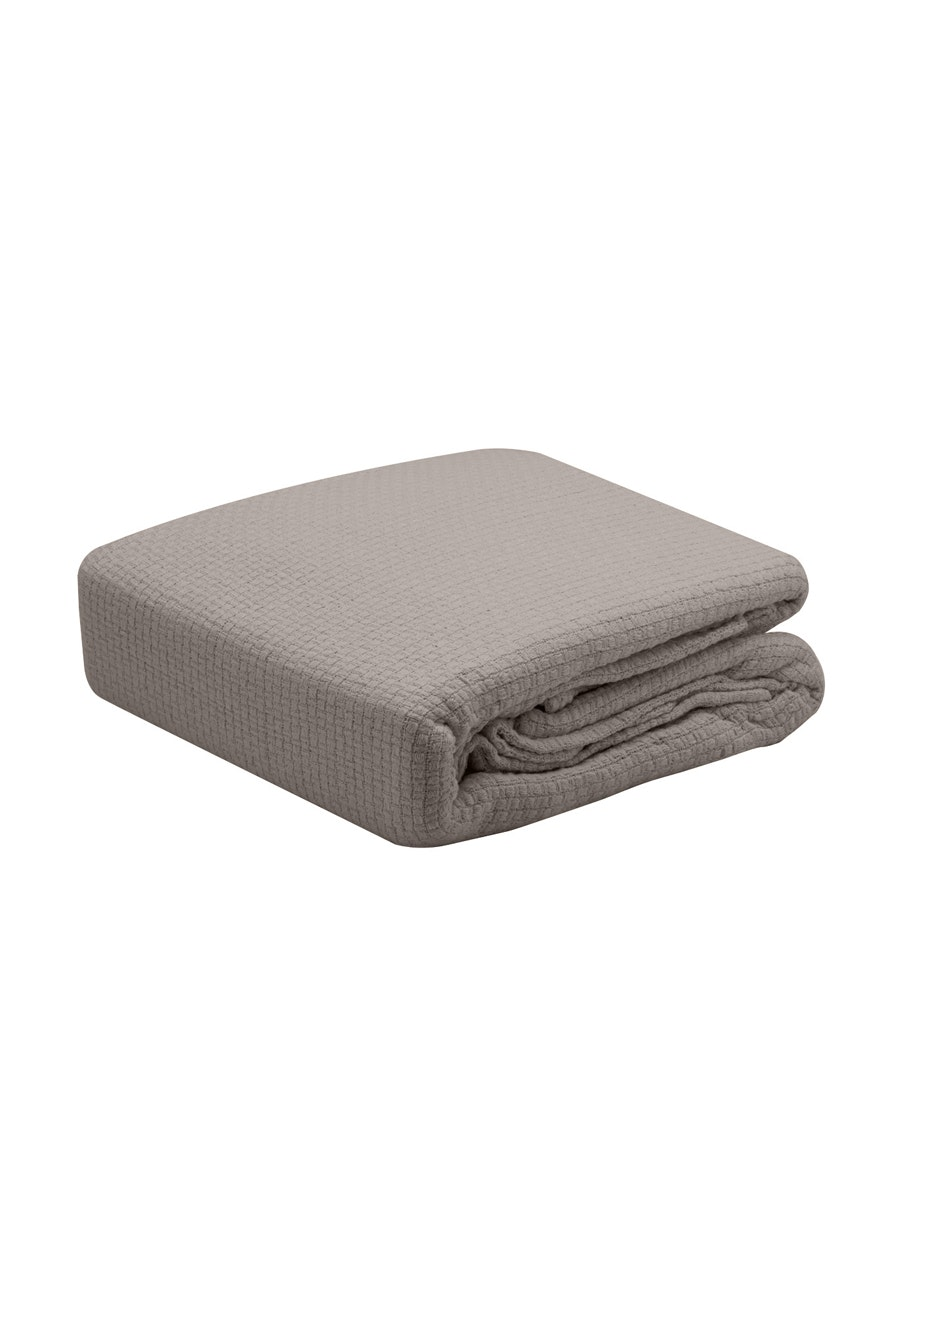 Pebble Weave Cotton Blanket - Stone - Single Bed